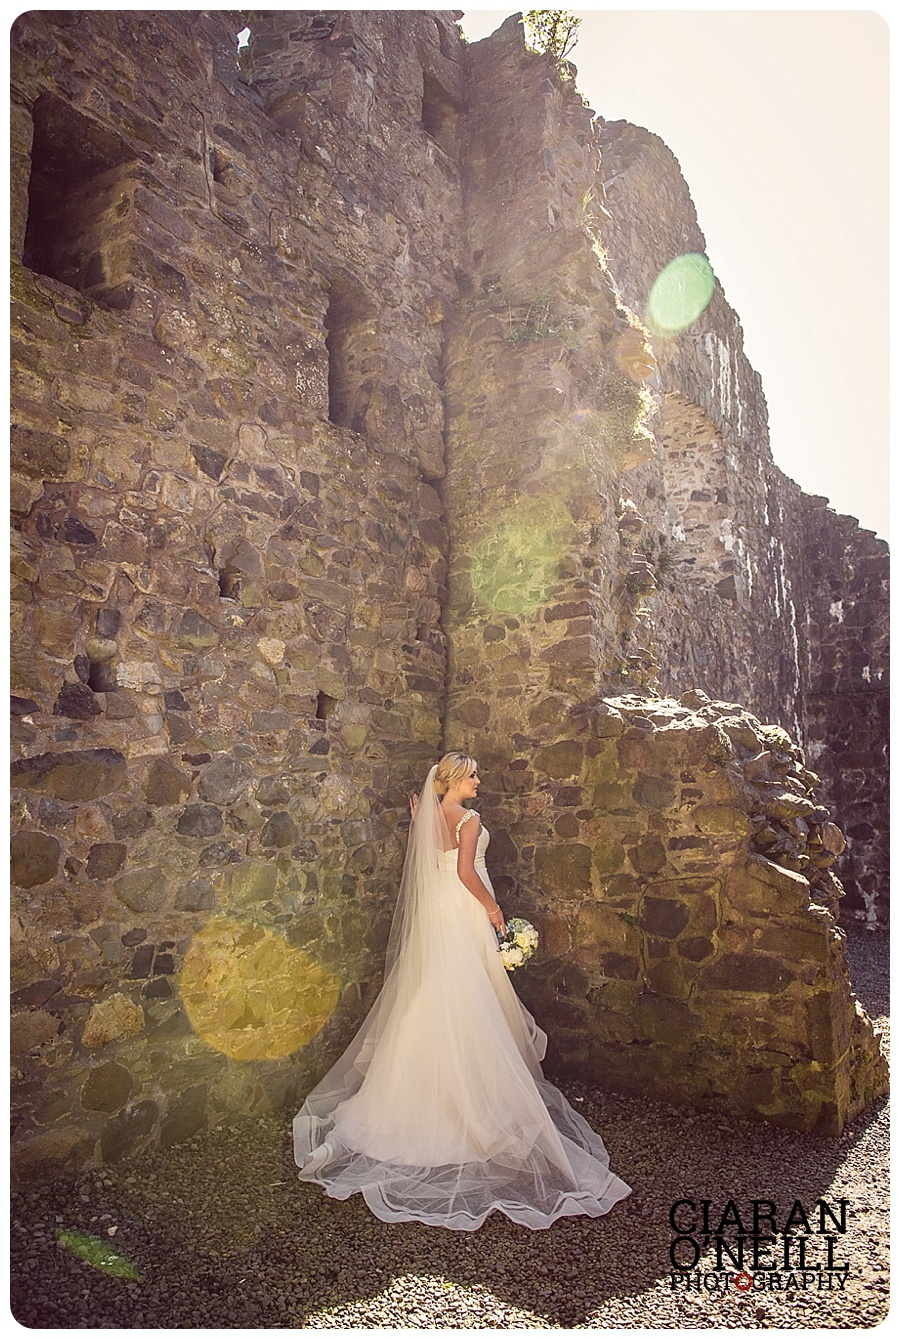 Bernadette & Niall's wedding at the Four Season Carlingford Hotel by Ciaran O'Neill Photography 01